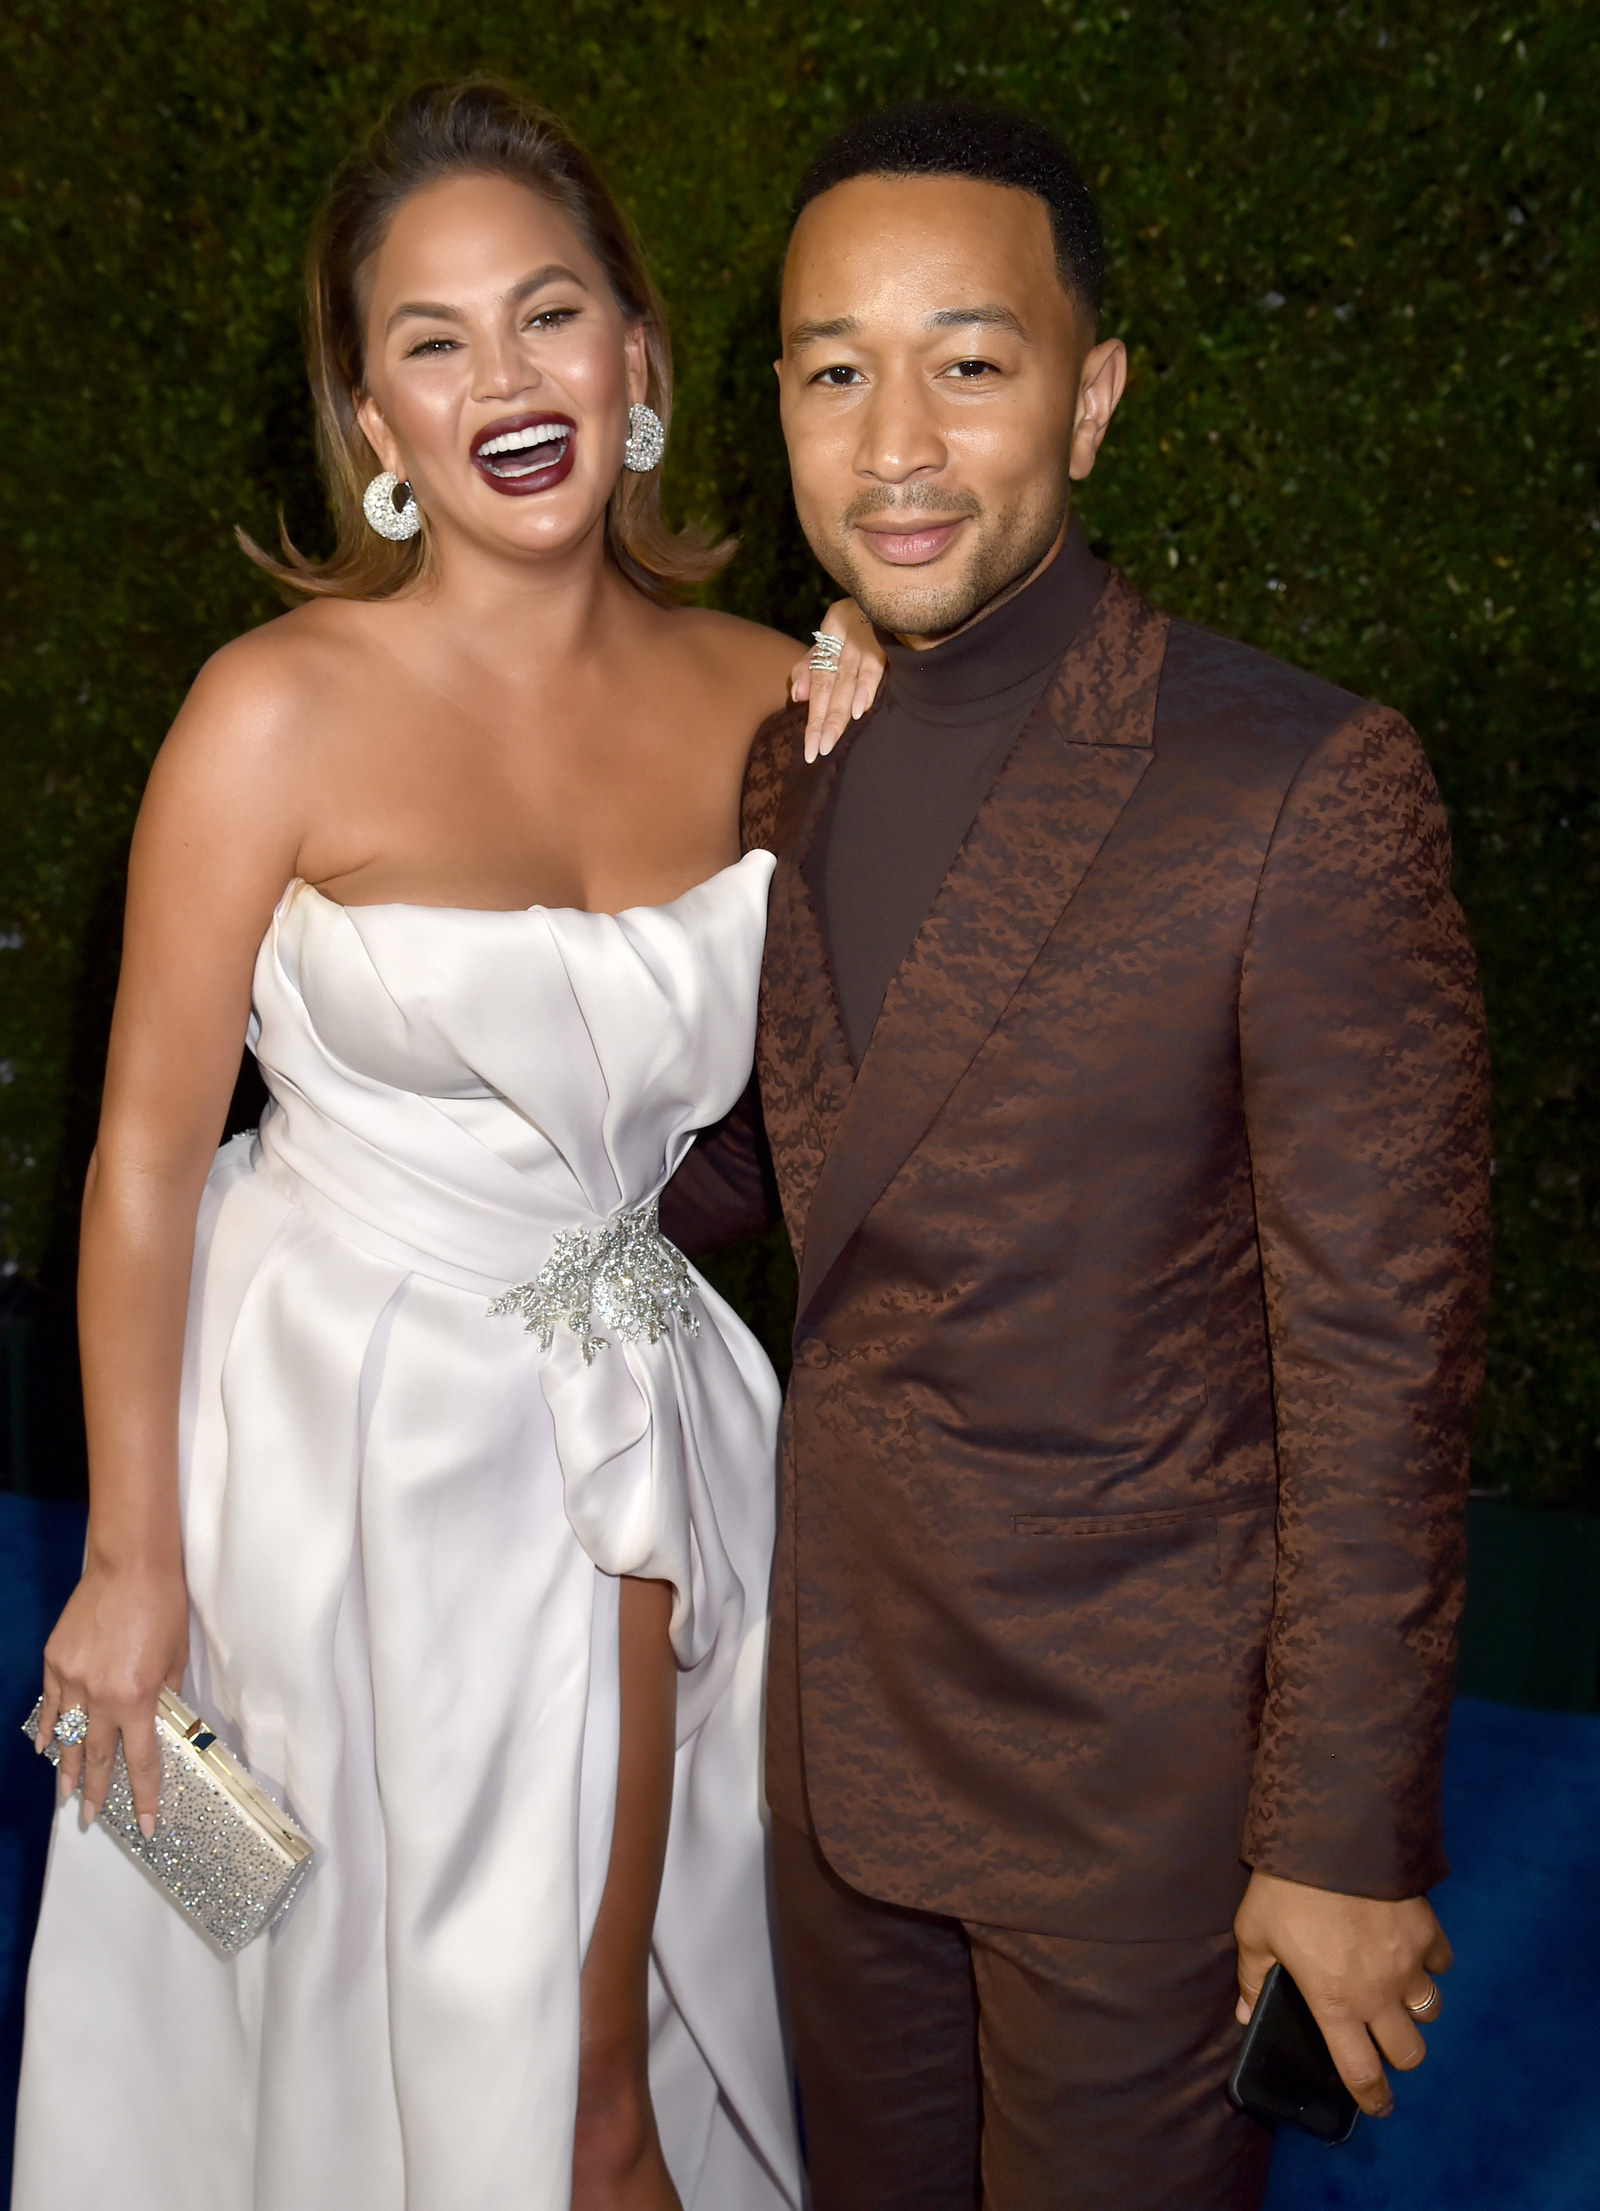 Chrissy Teigen Joked About Cheating On John Legend